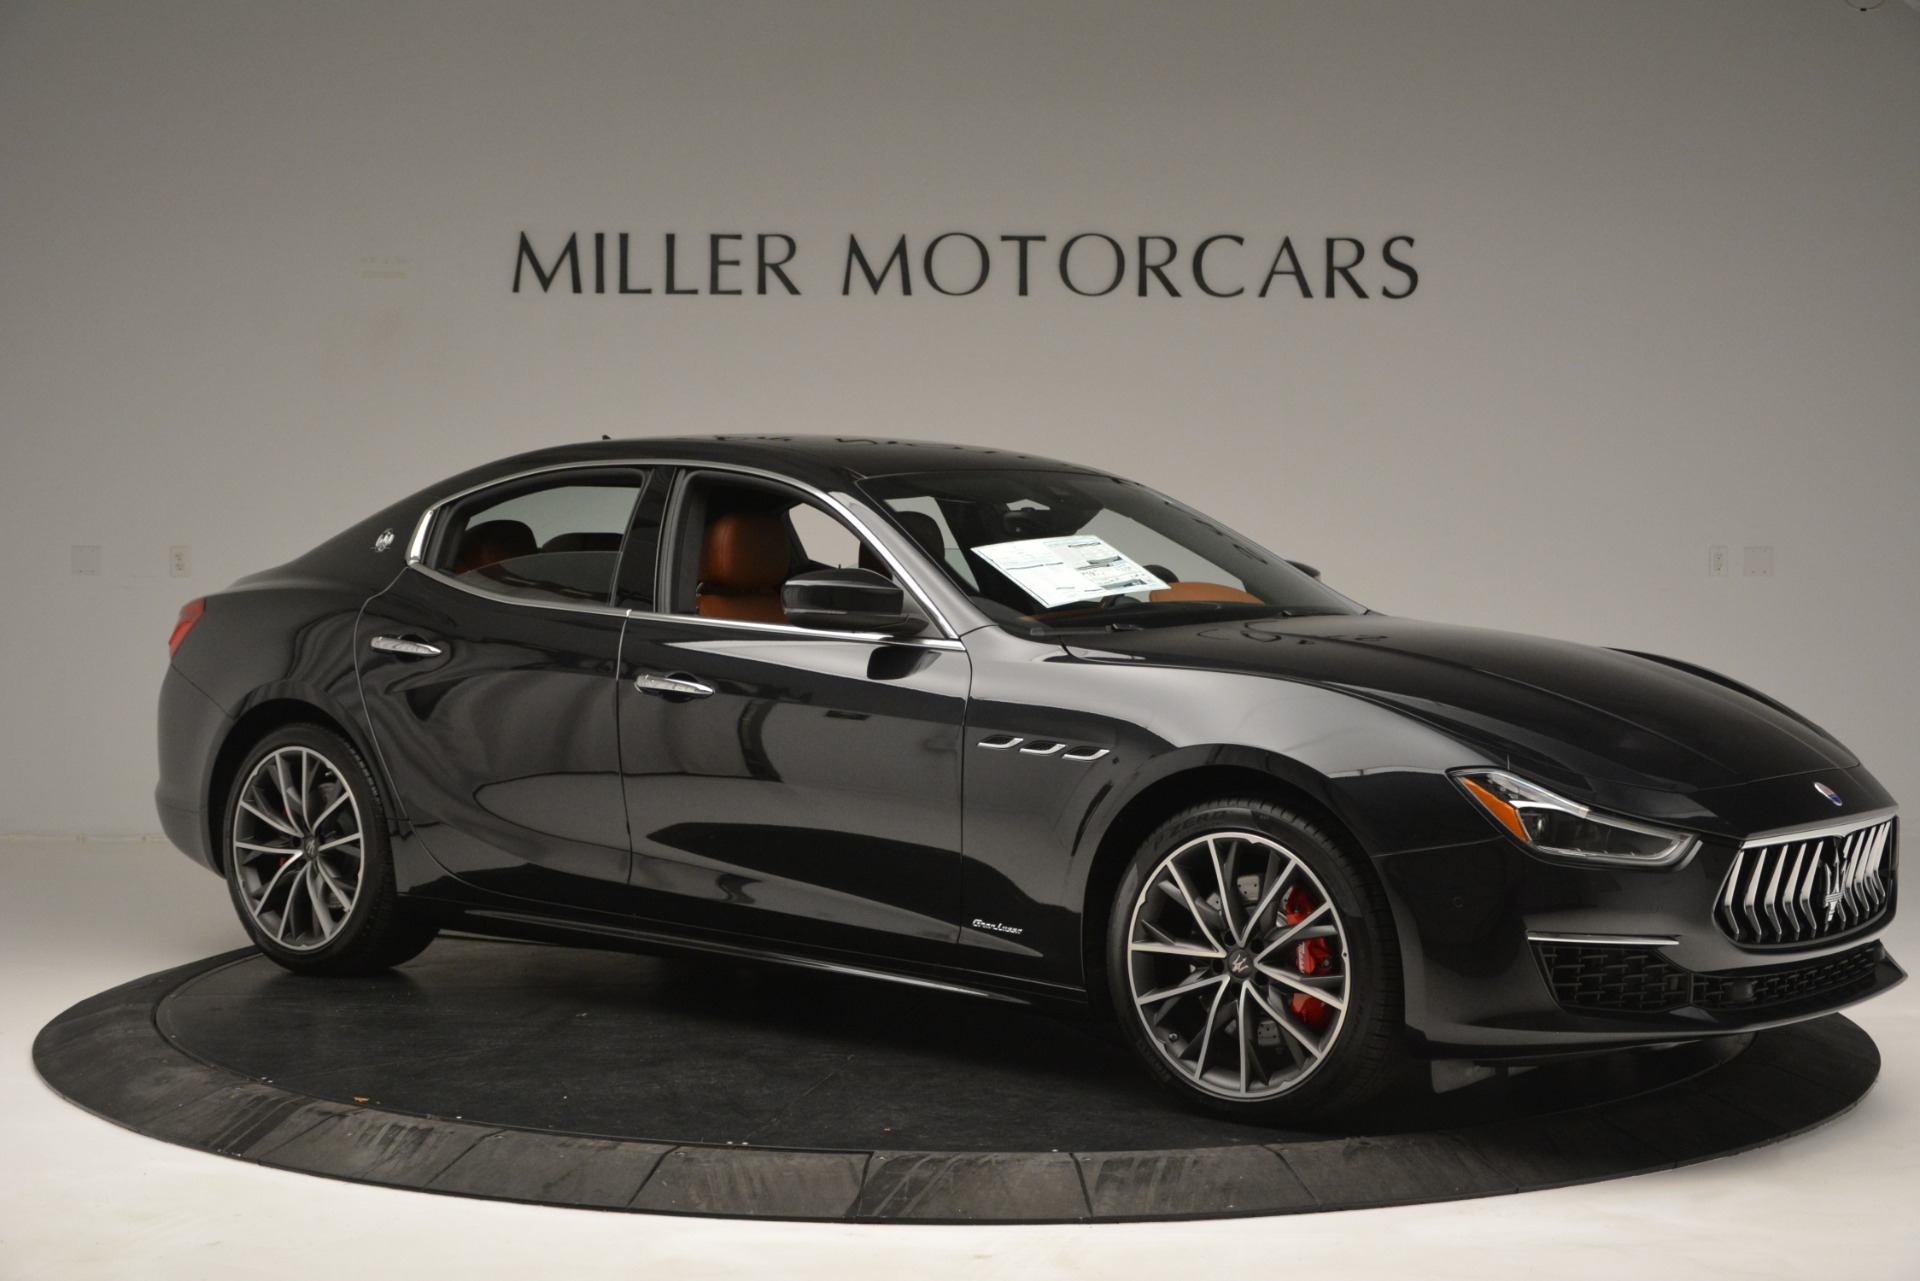 New 2019 Maserati Ghibli S Q4 GranLusso For Sale In Greenwich, CT. Alfa Romeo of Greenwich, M2223 2590_p10